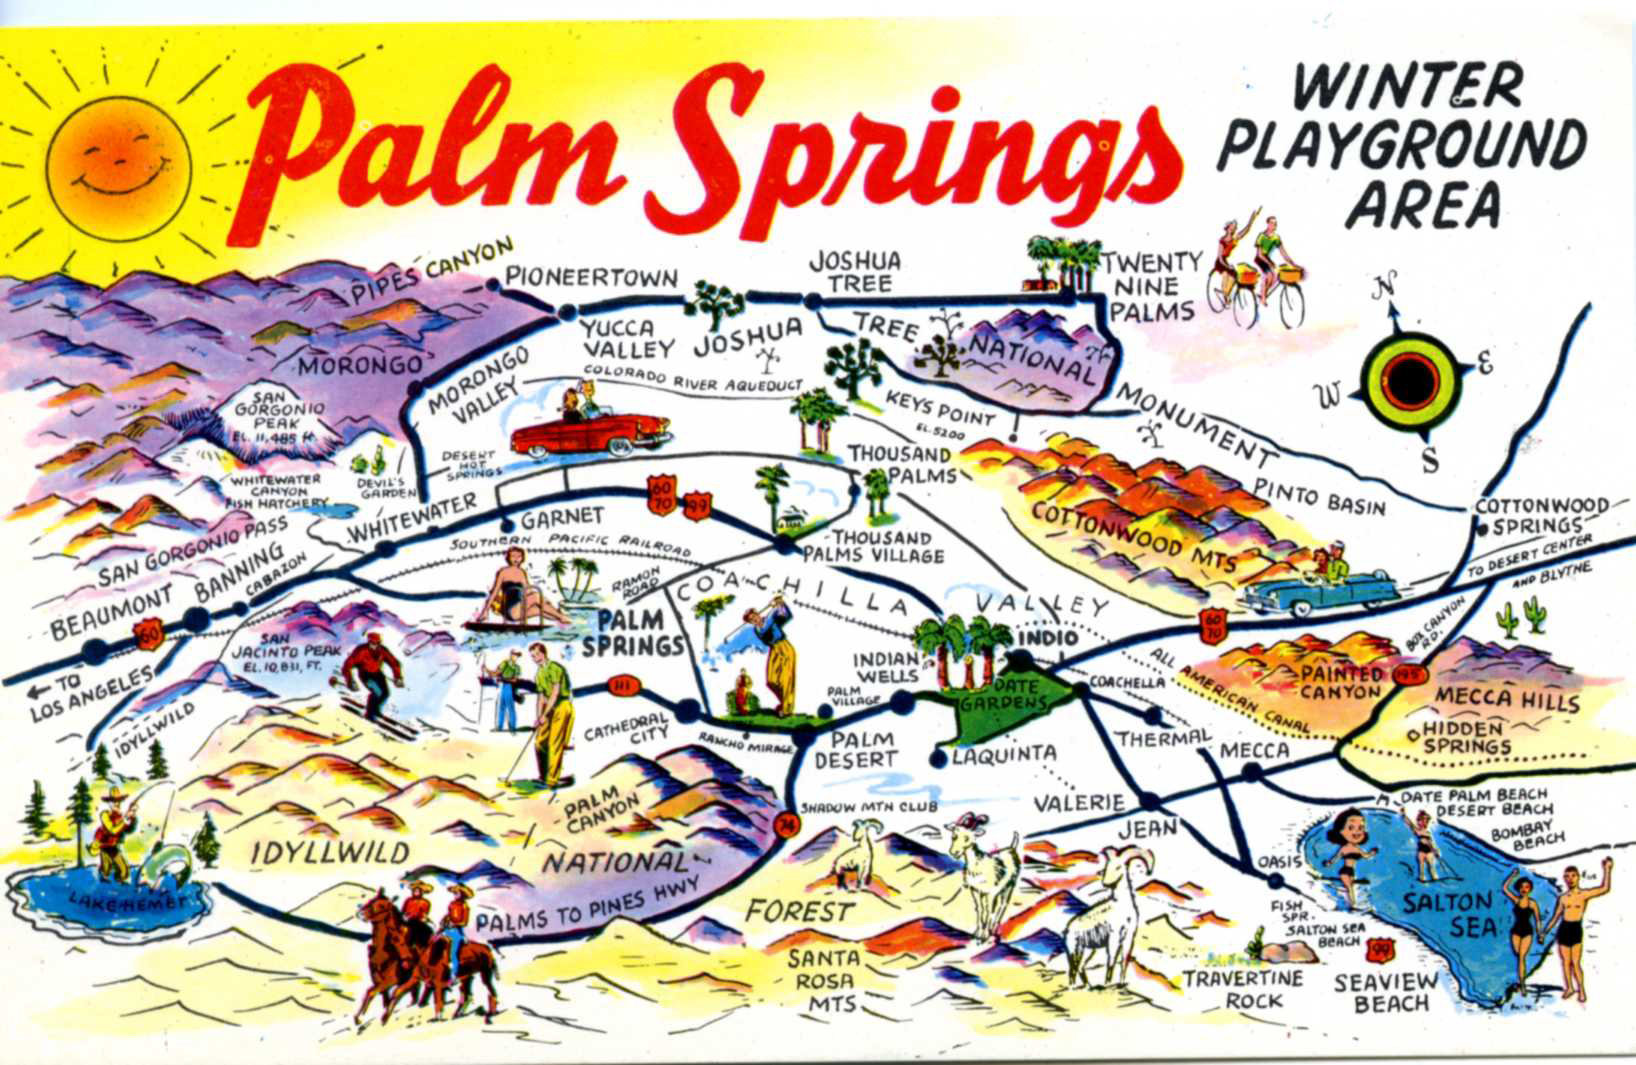 Palm Springs Winter Playground, Vintage Postcard